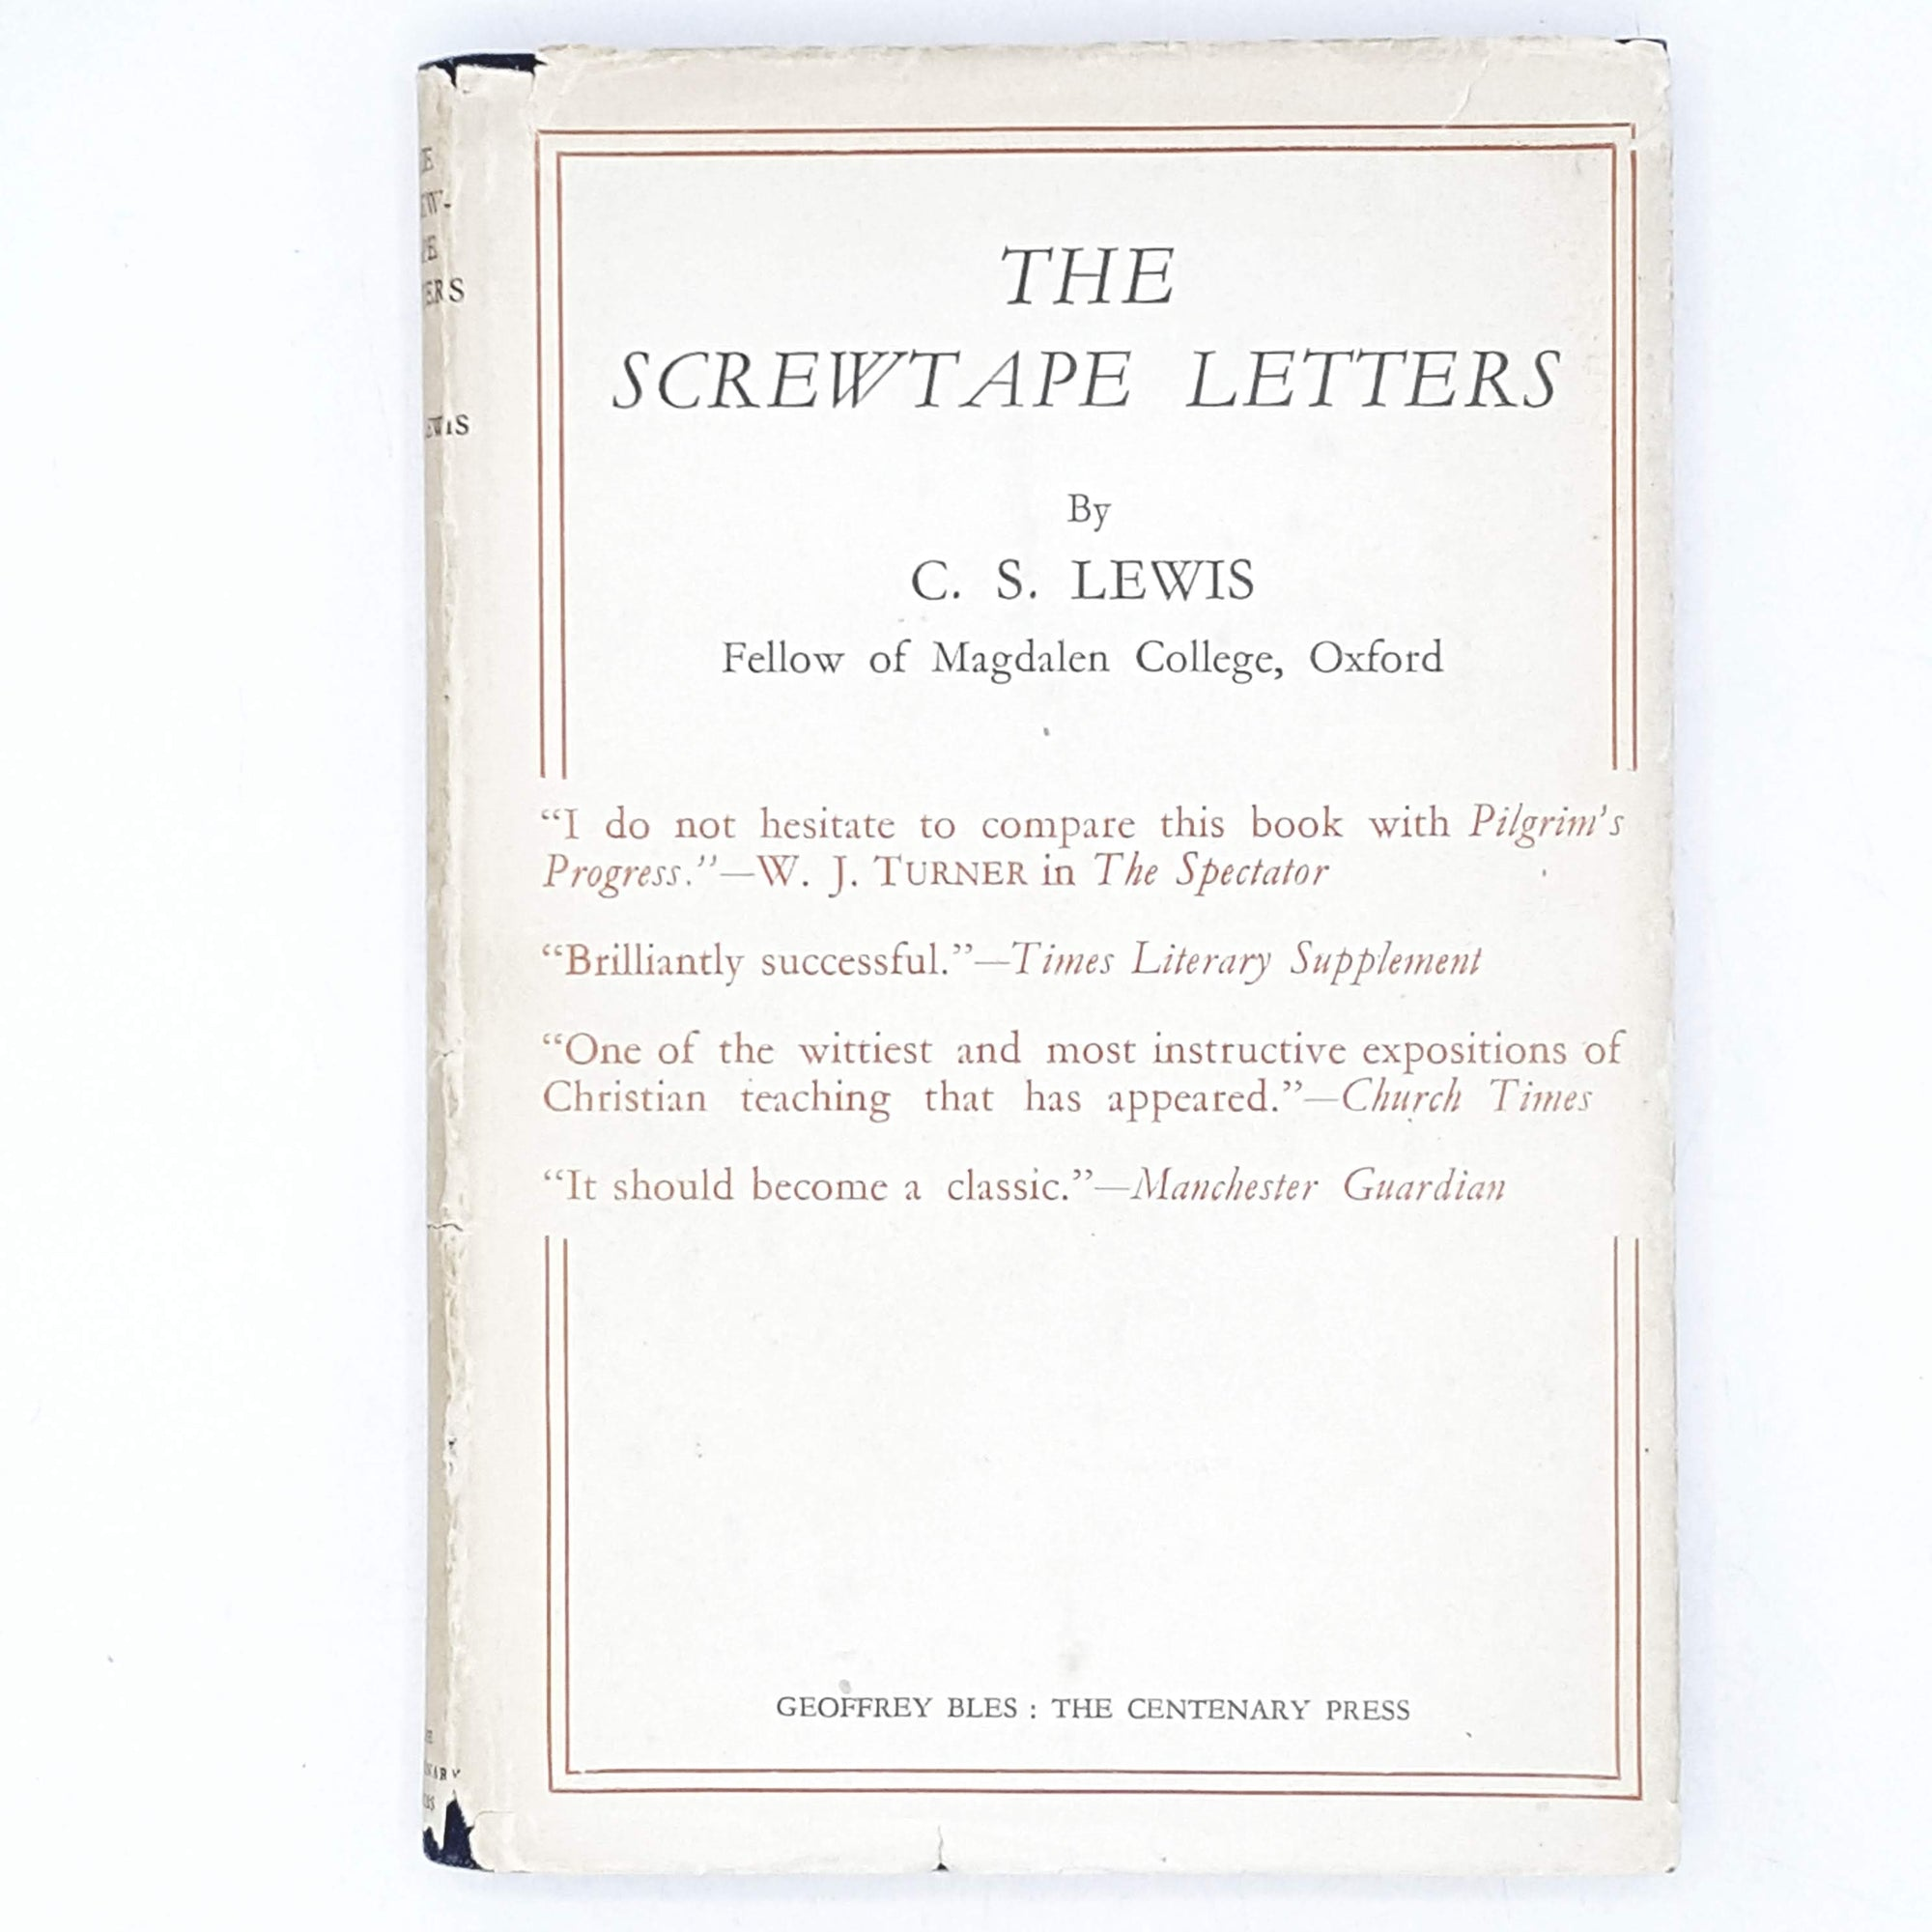 cs-lewis-screwtape-letters